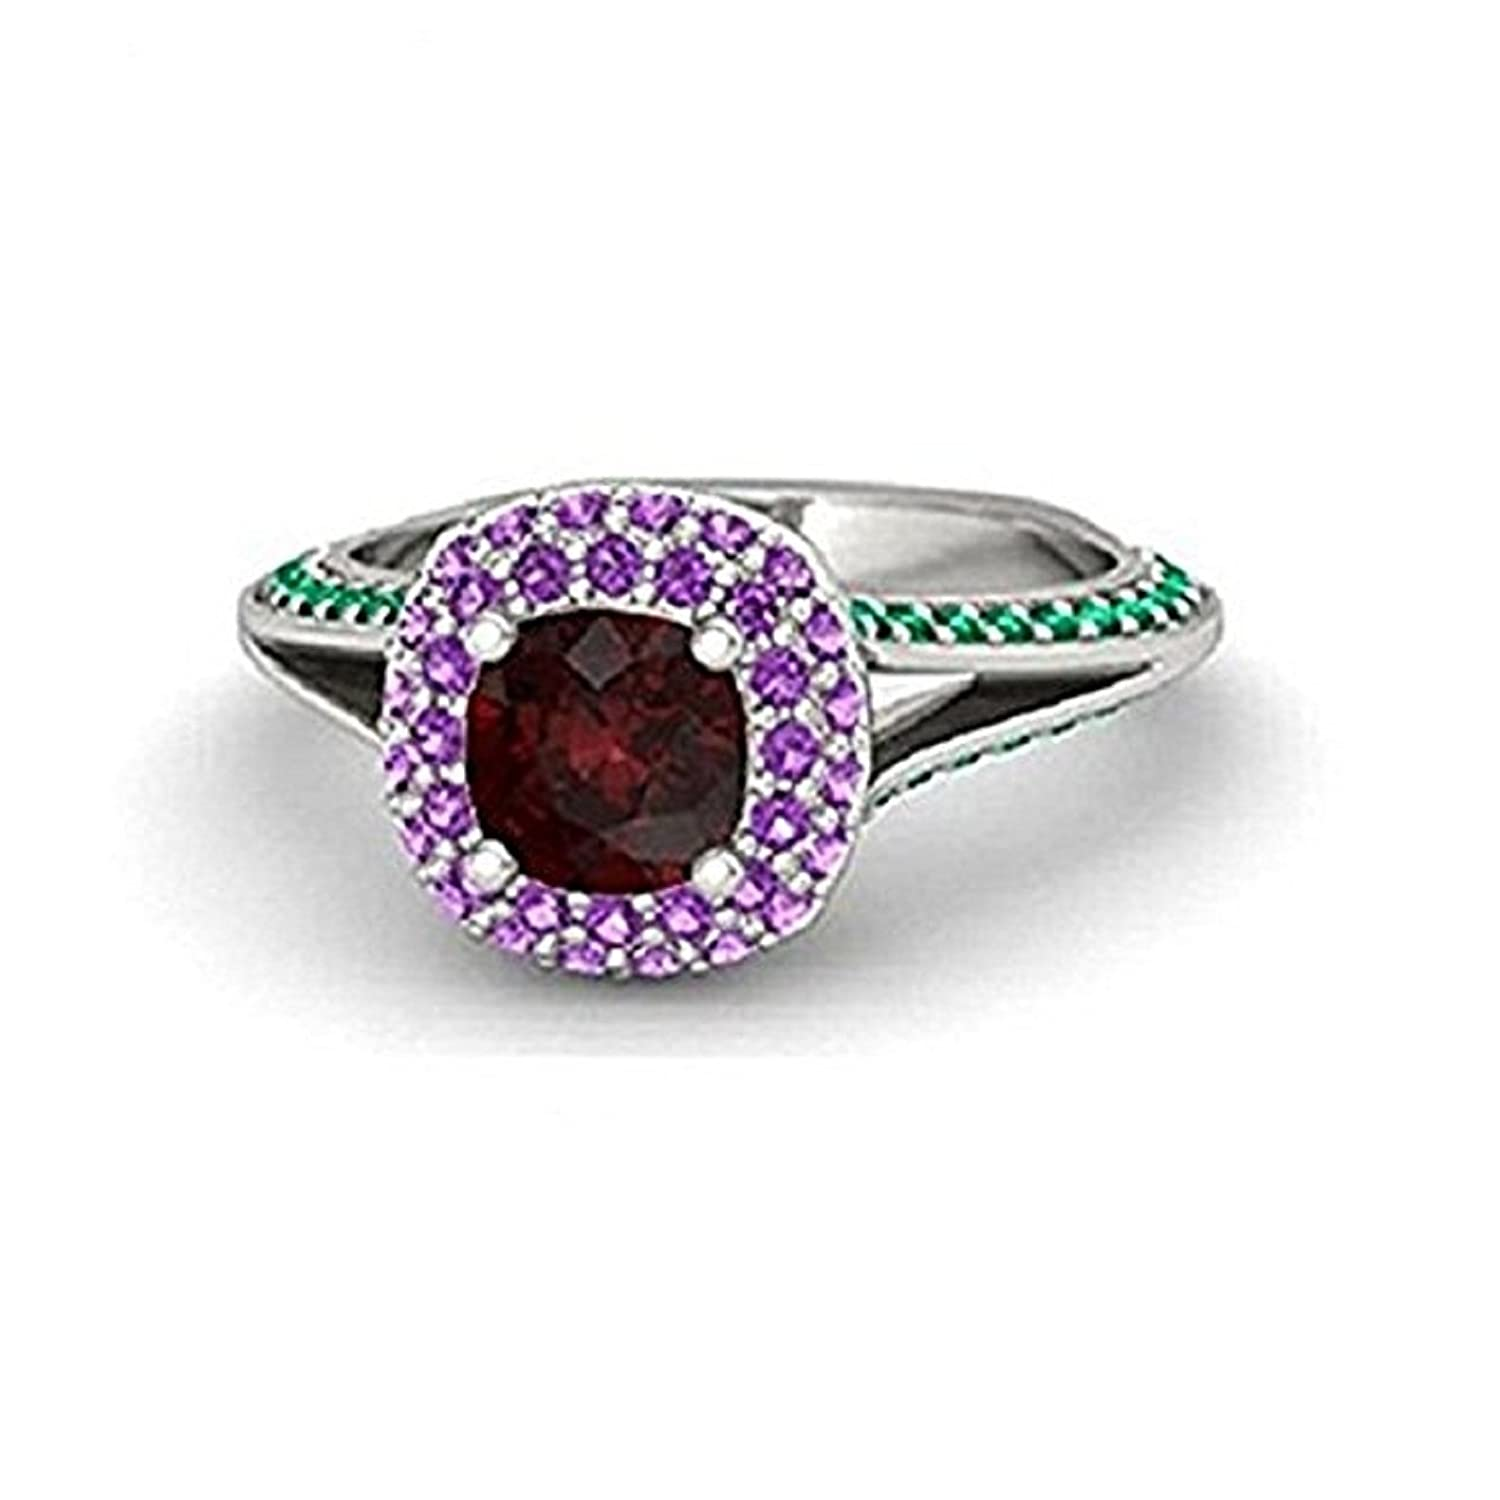 14K White Gold Plating Alloy Ariel Princess Ring Created Multi-Color CZ Princess Engagement /& Wedding Ring Womens Fashion Jewelry